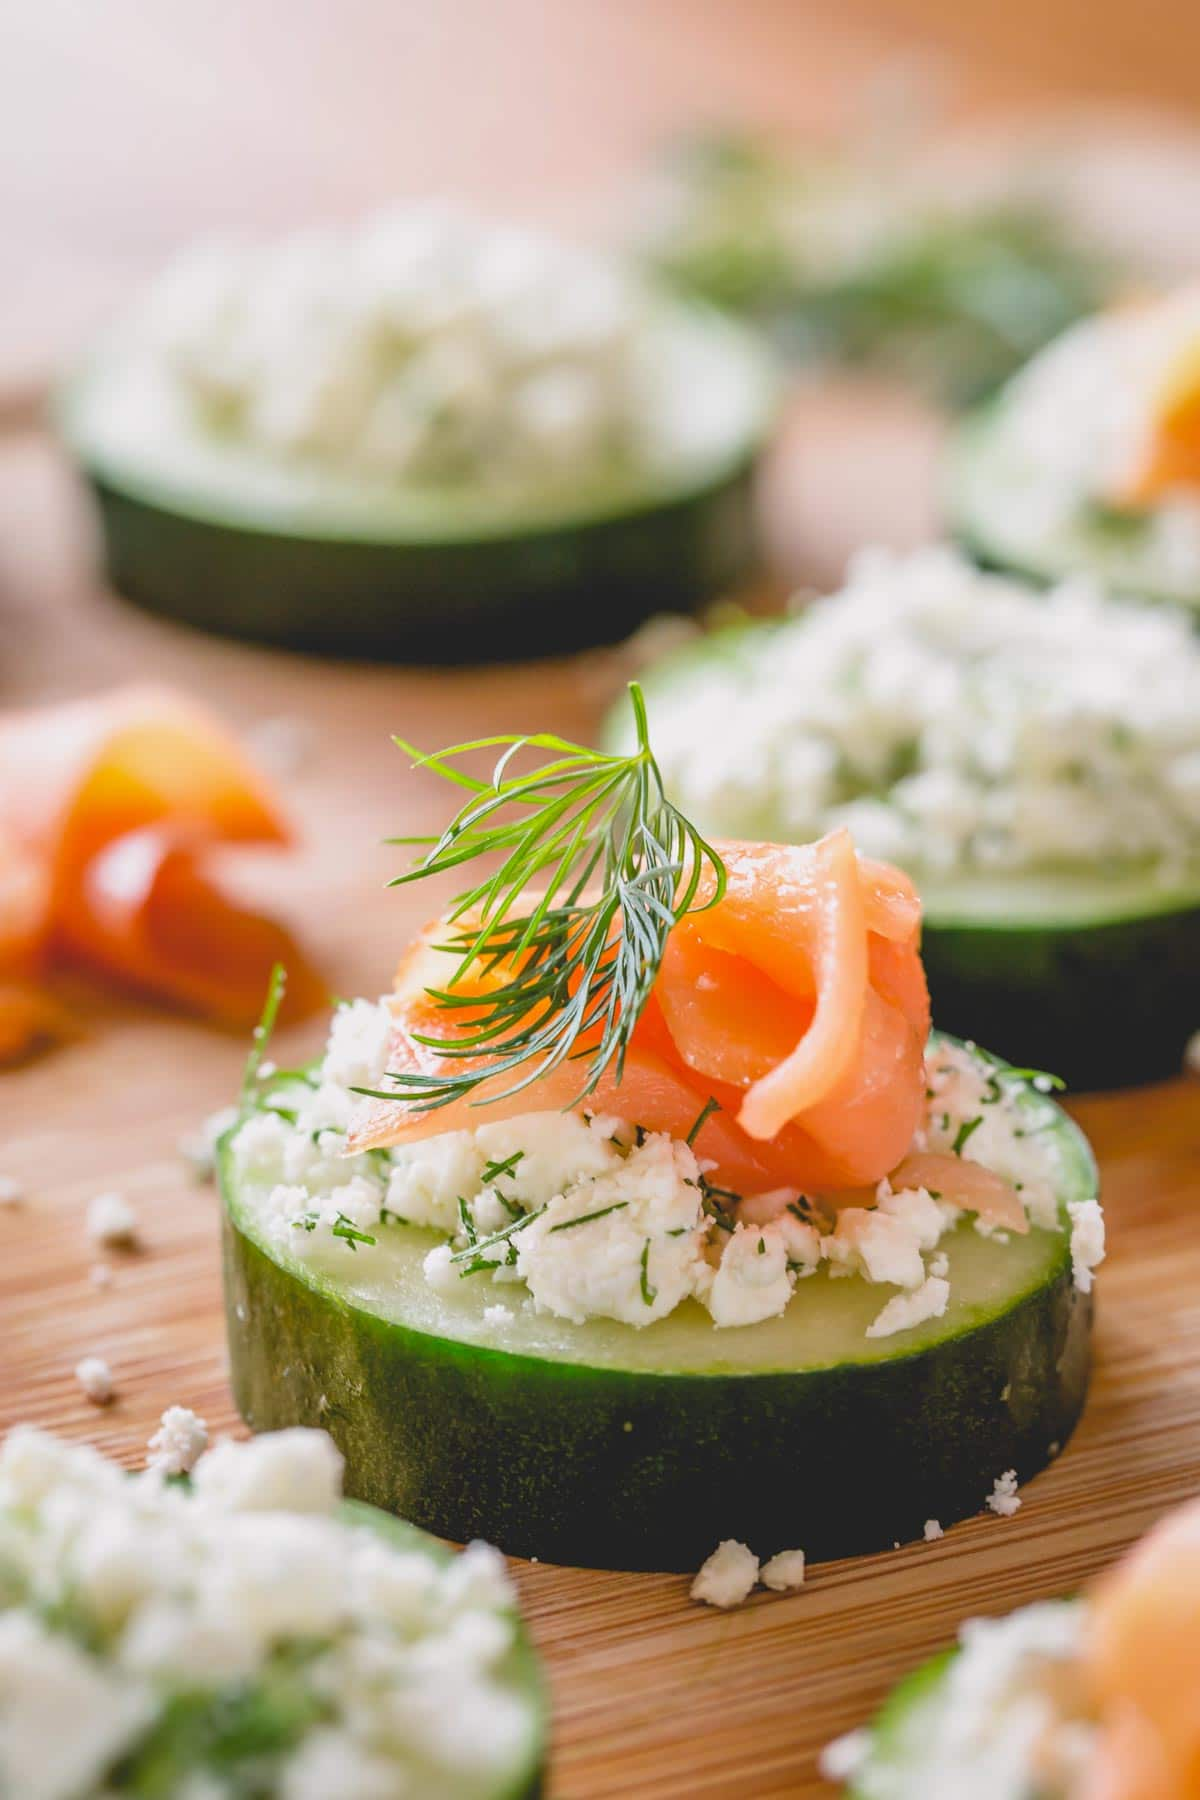 A cucumber slice topped with feta cheese, dill and salmon on a wooden serving platter.